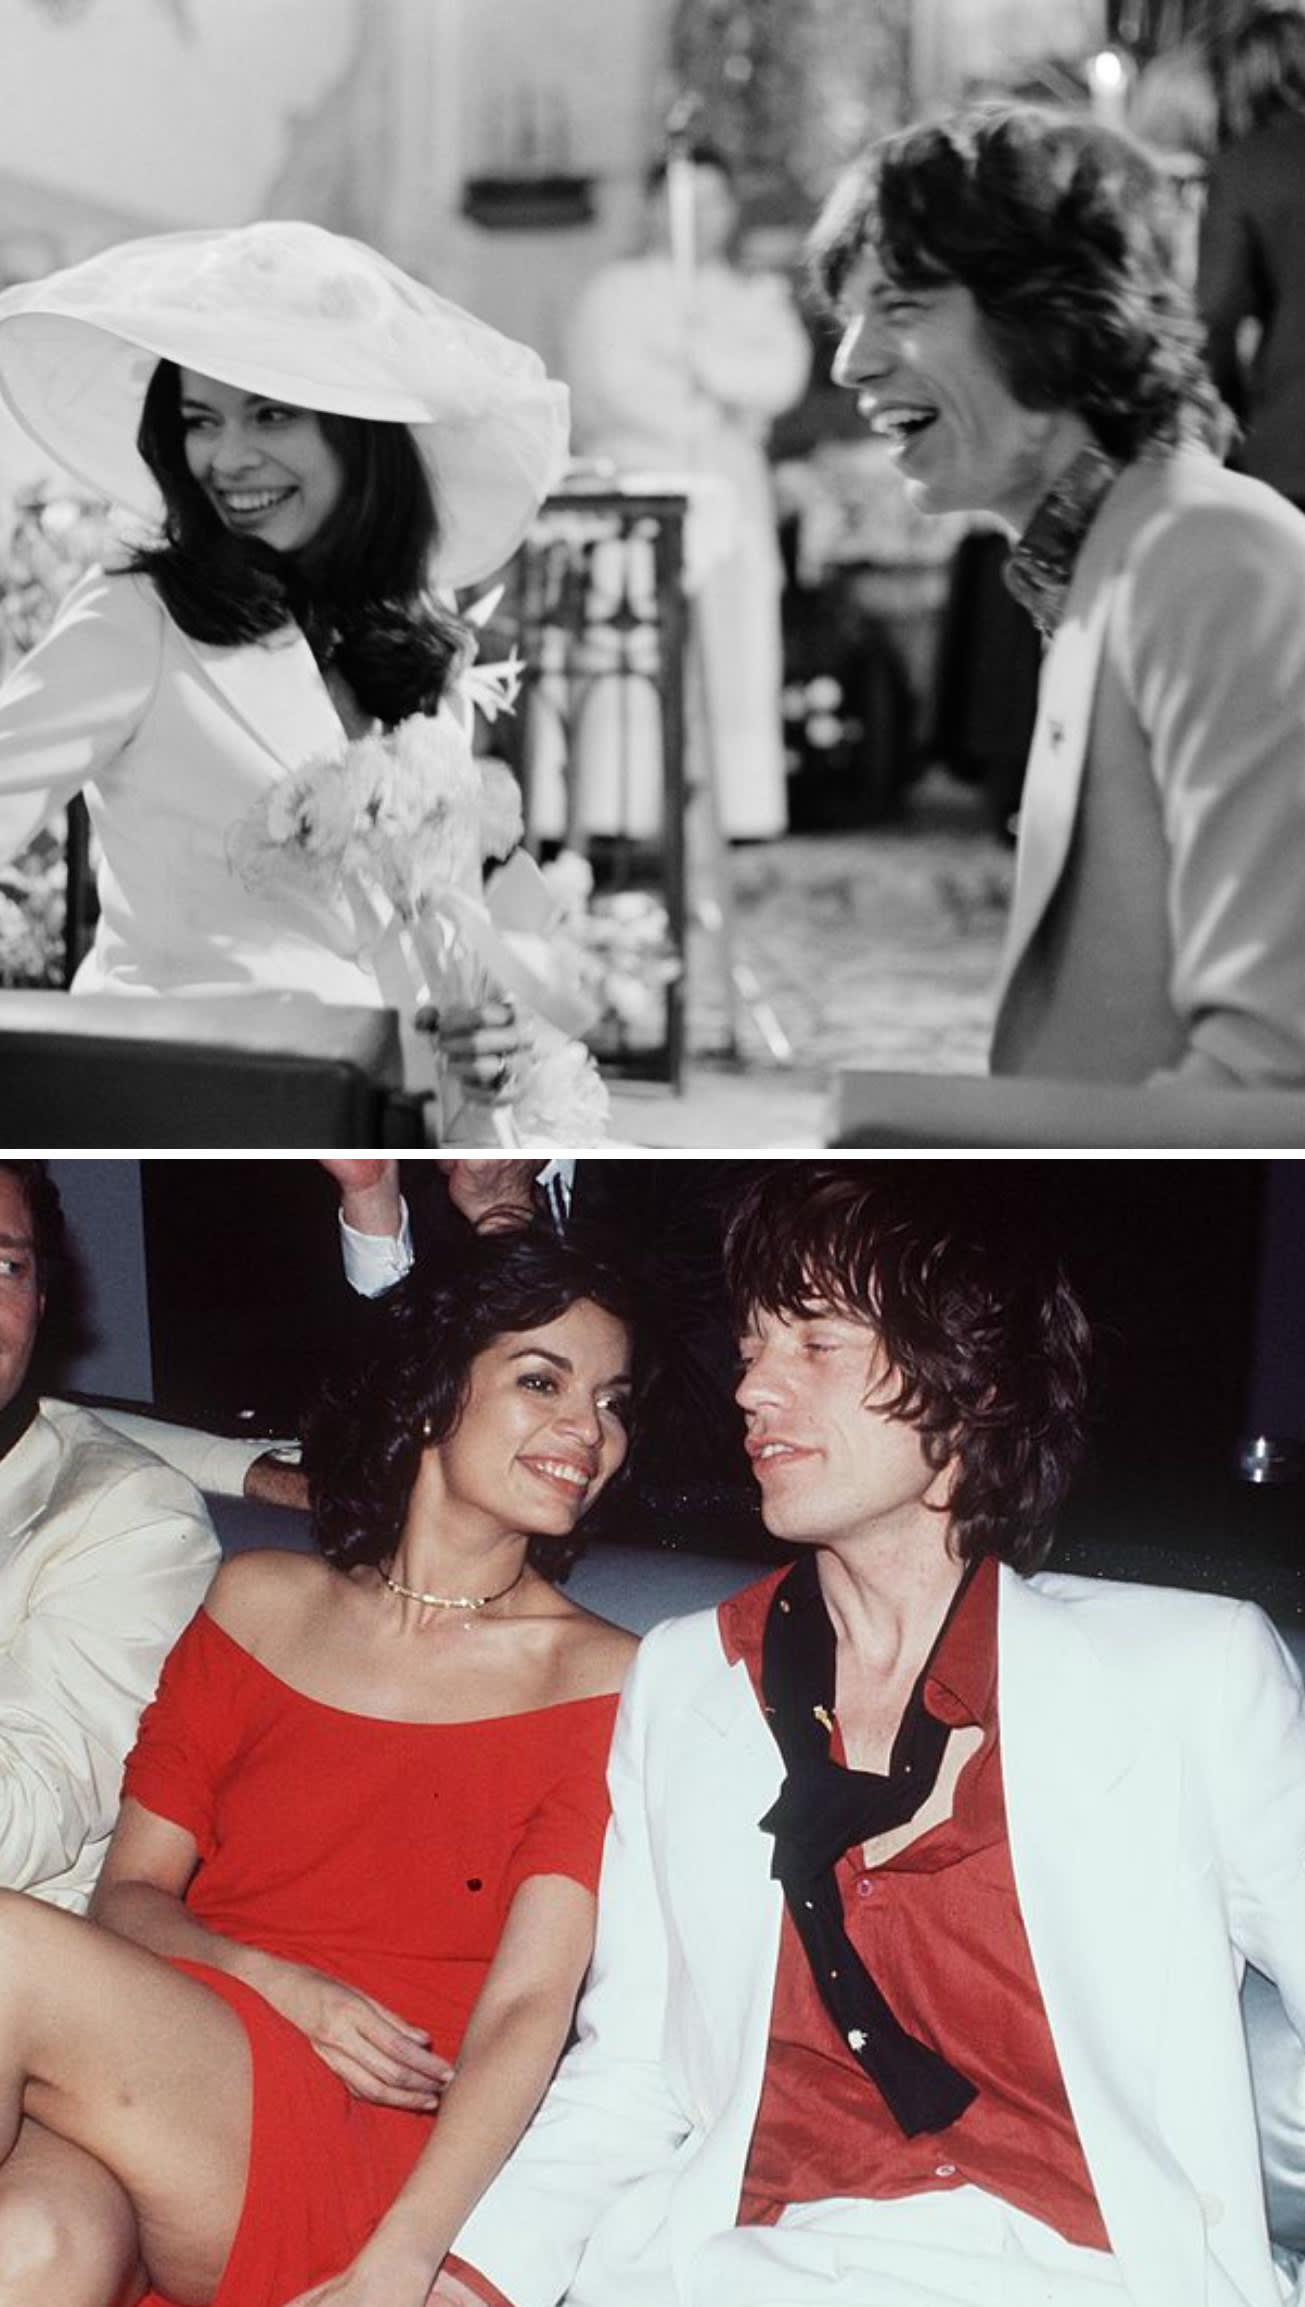 Mick and Bianca getting married in 1971; Mick and Bianca at Studio 54 in 1977